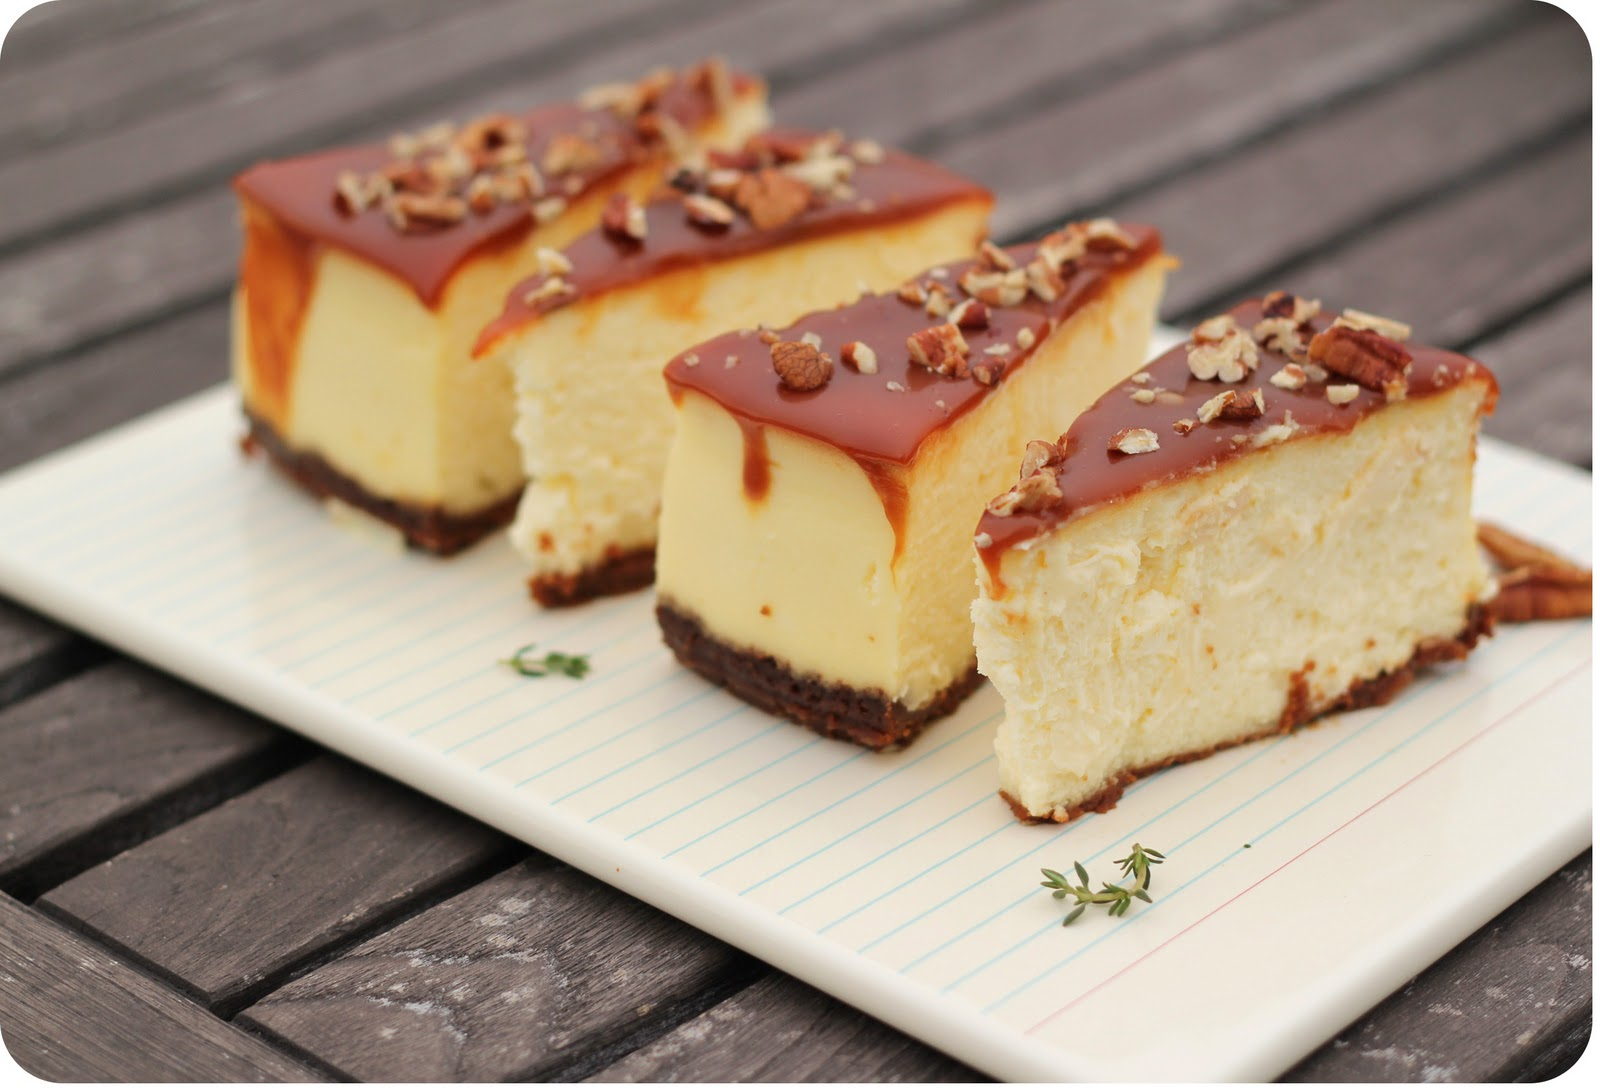 Dulce Delight: Caramel Pecan Cheesecake